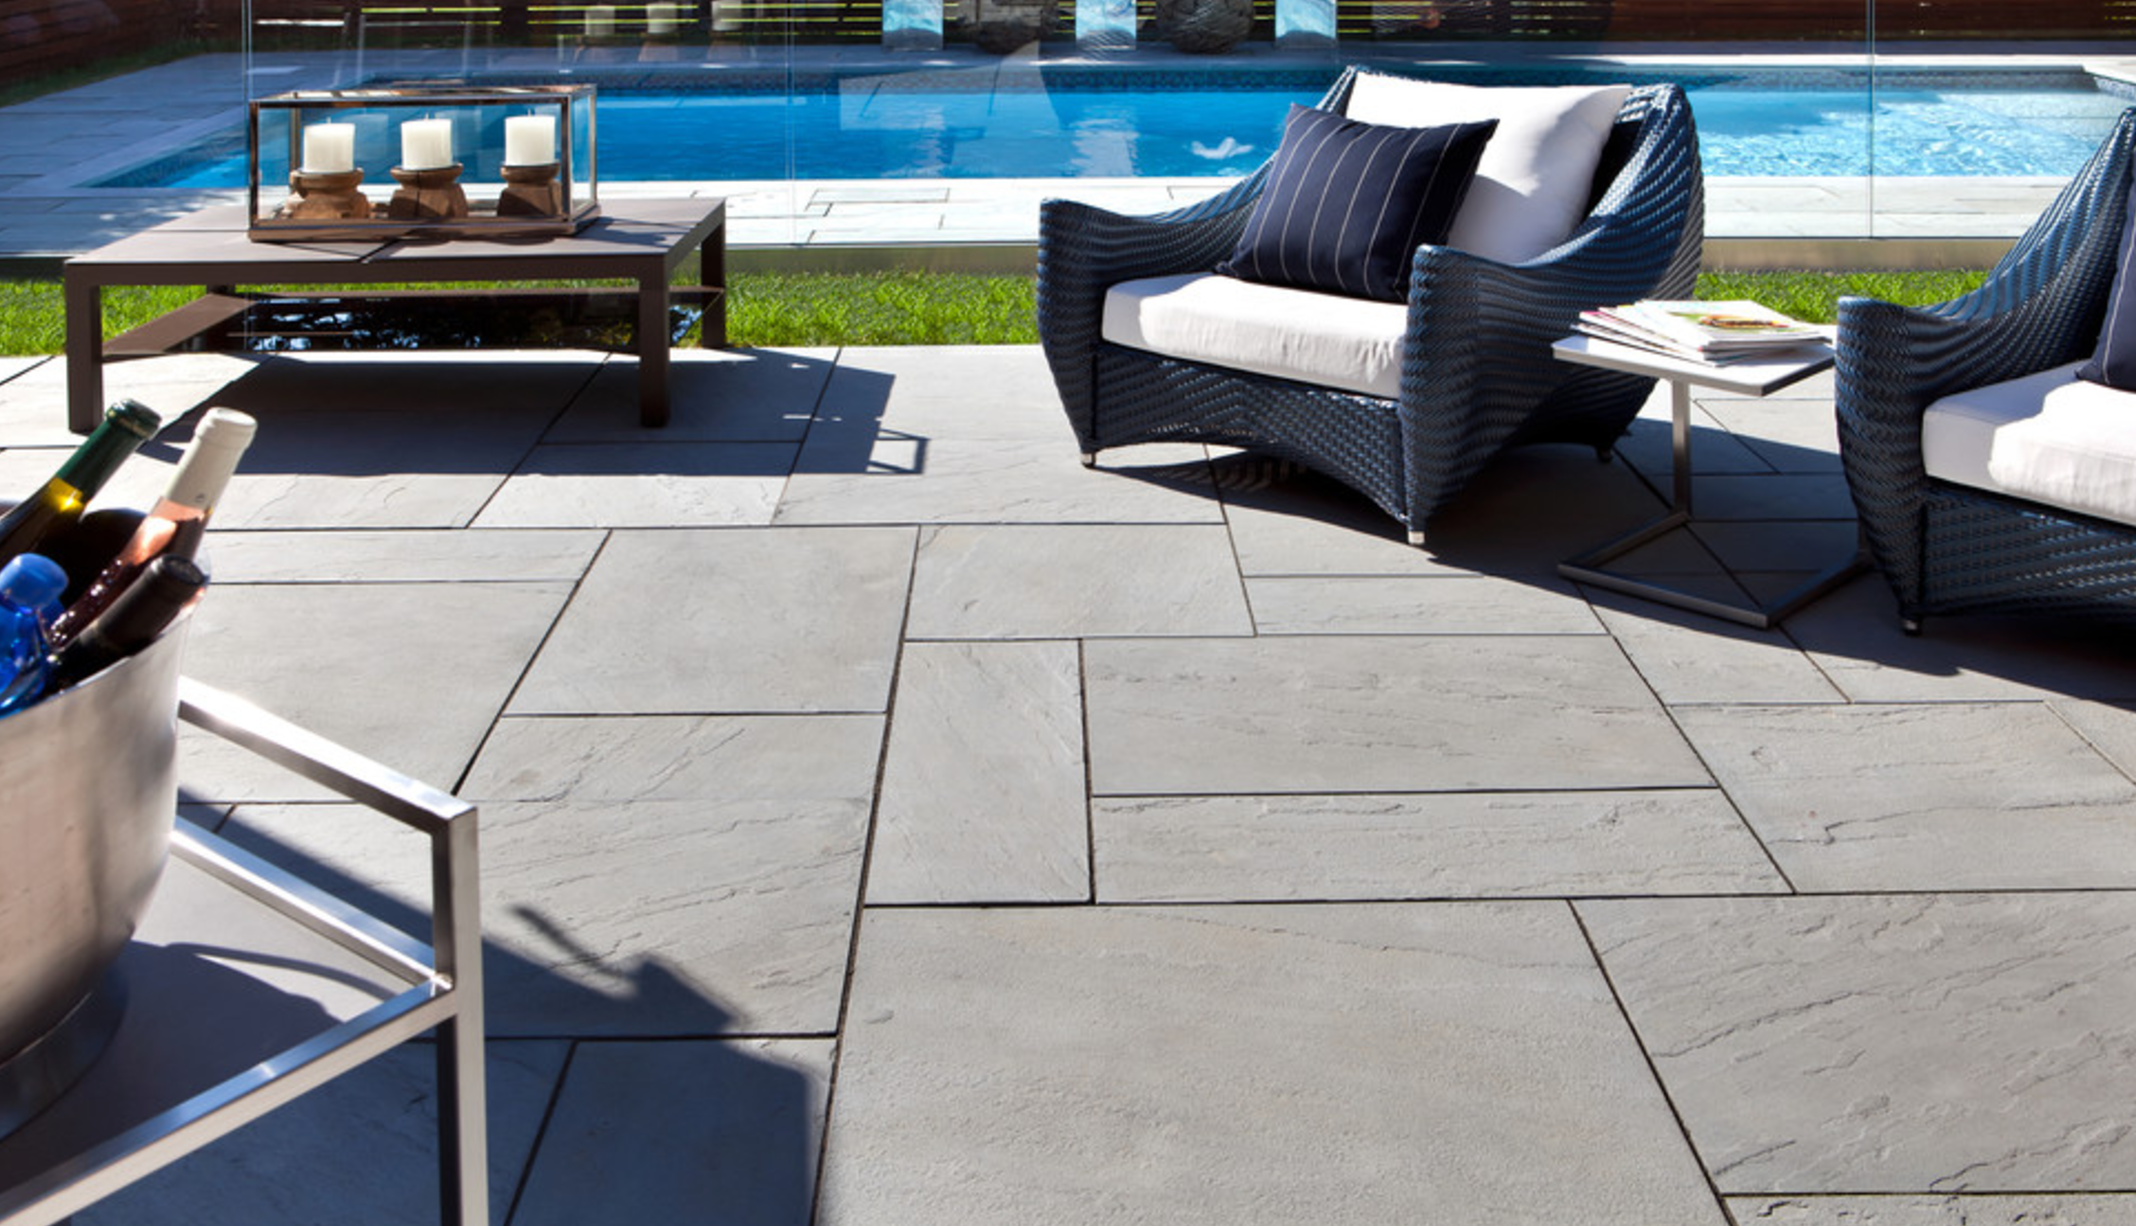 Top landscape design with paving stones in Rockland County, NY